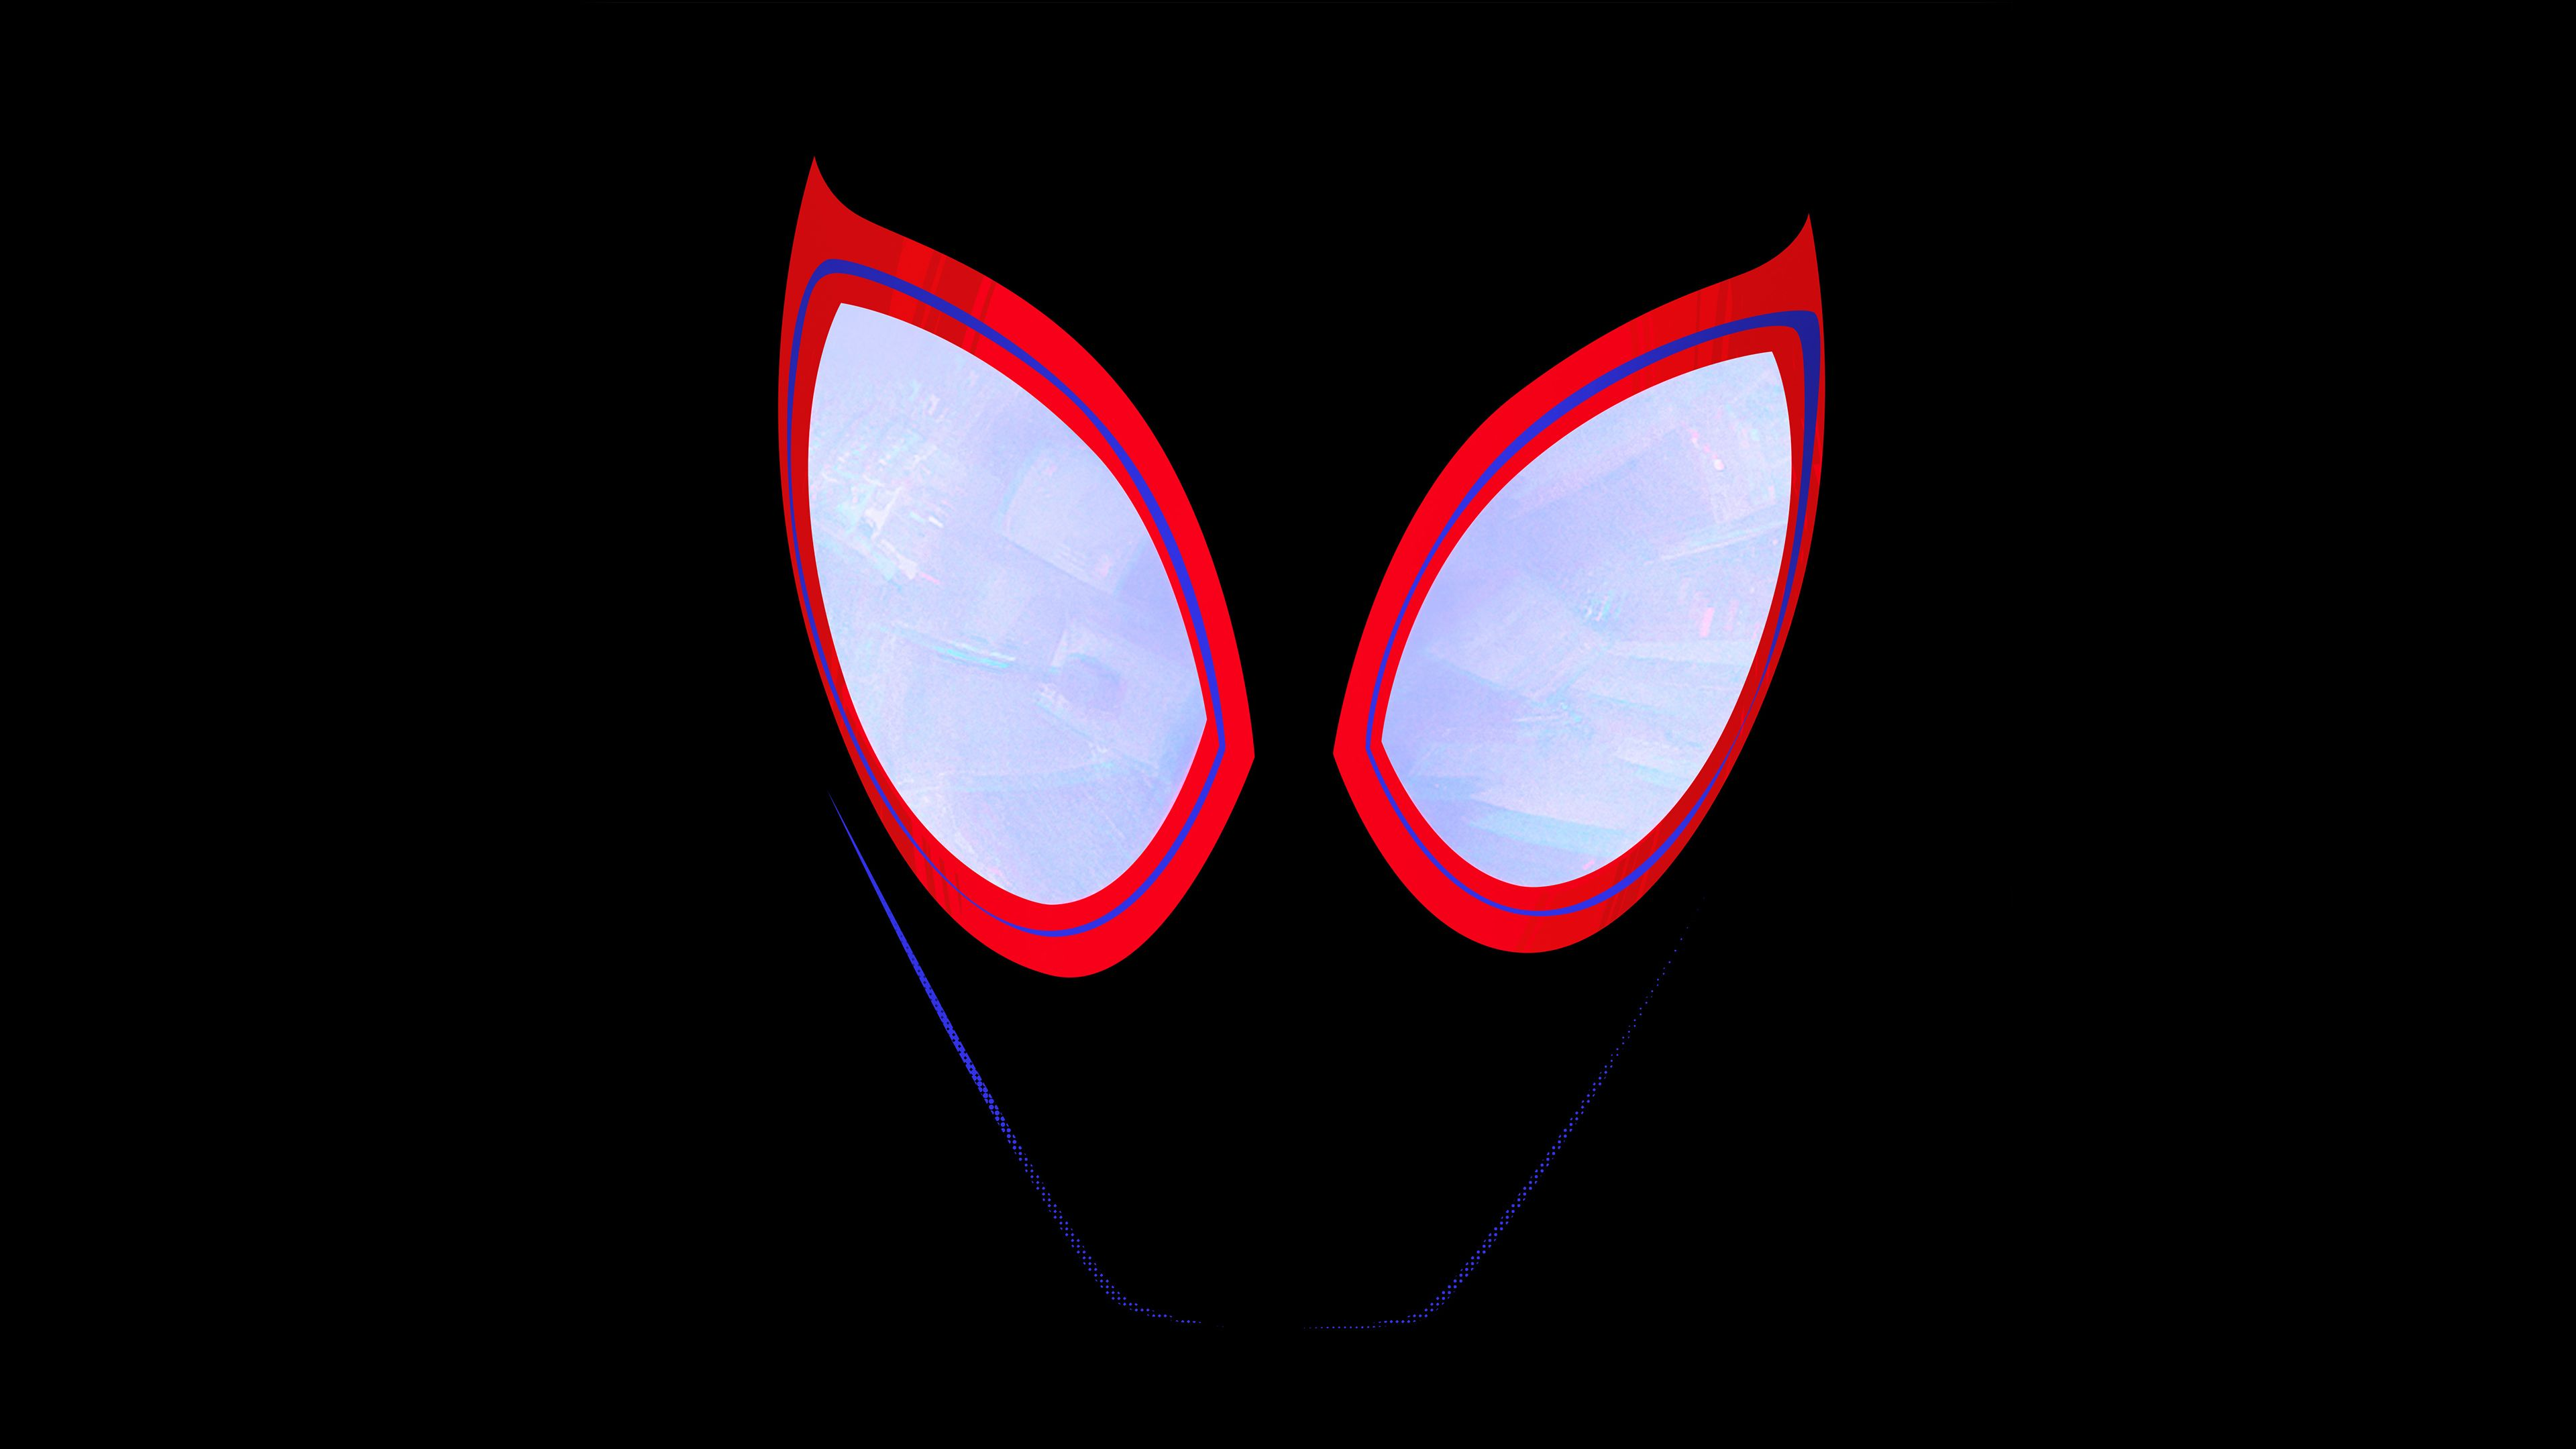 Spiderman Into The Spider Verse 4k 2018 Spiderman Wallpapers Spiderman Into The Spider Verse Wallpapers M Spider Verse Post Malone Wallpaper Marvel Wallpaper